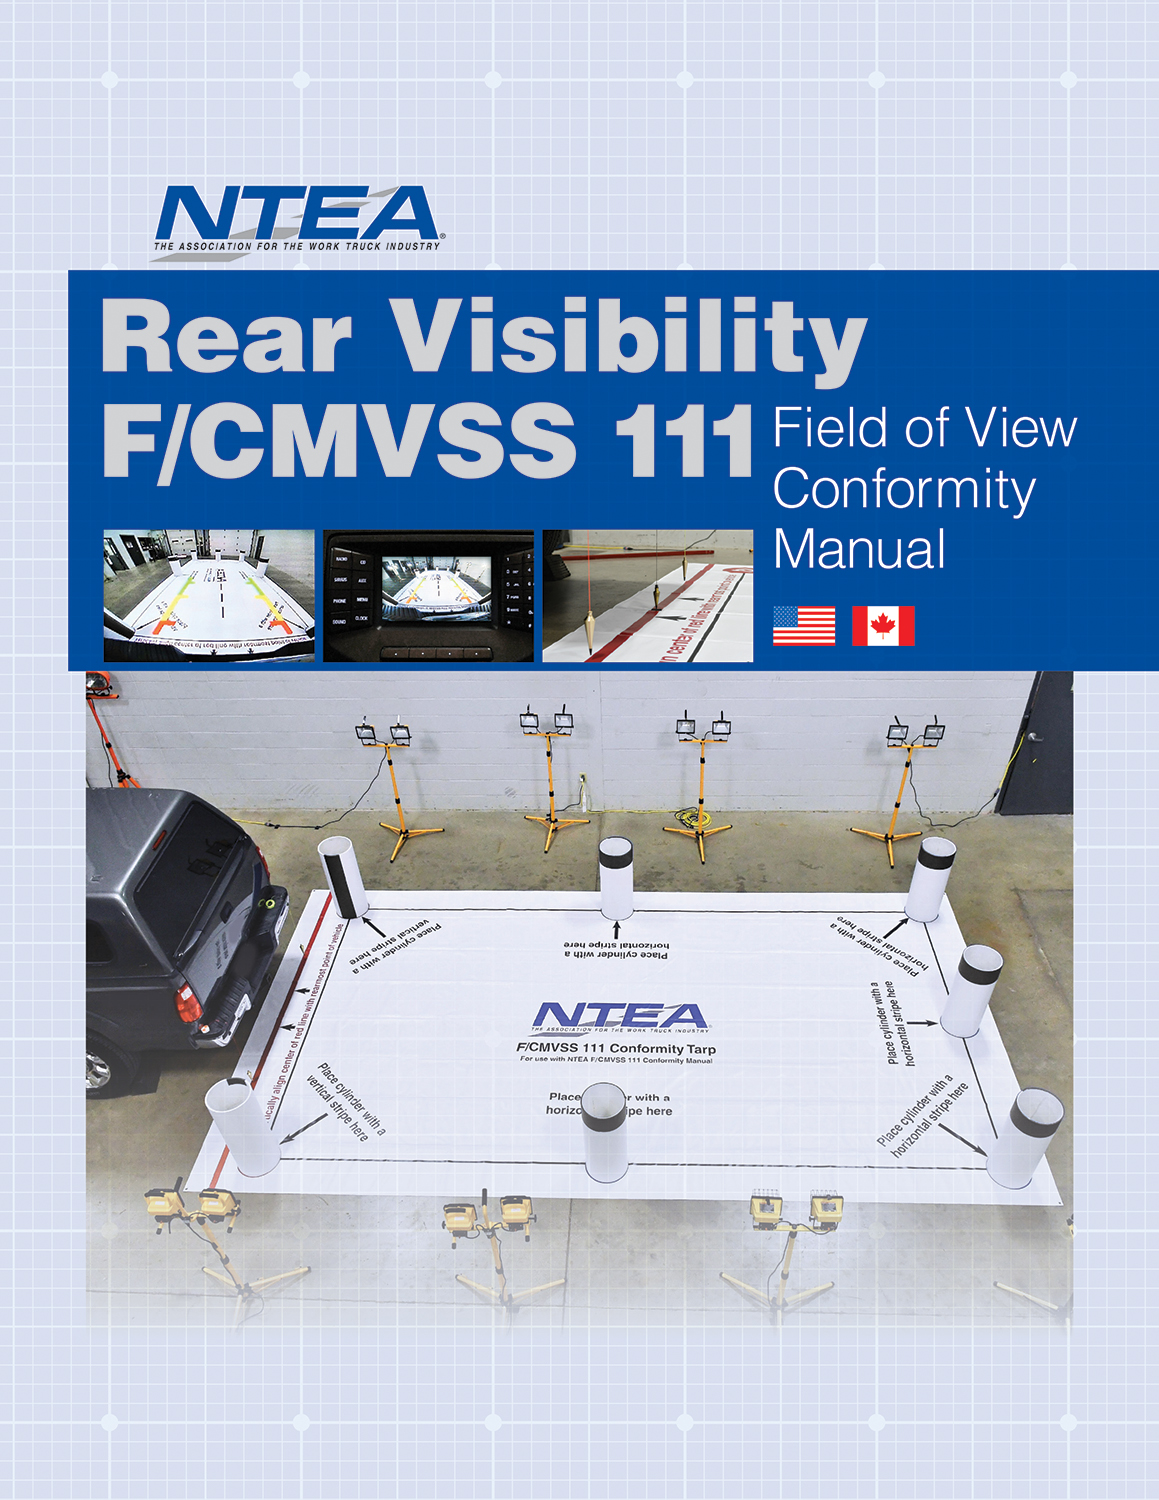 Rear Visibility F/CMVSS 111 Field of View Conformity Manual